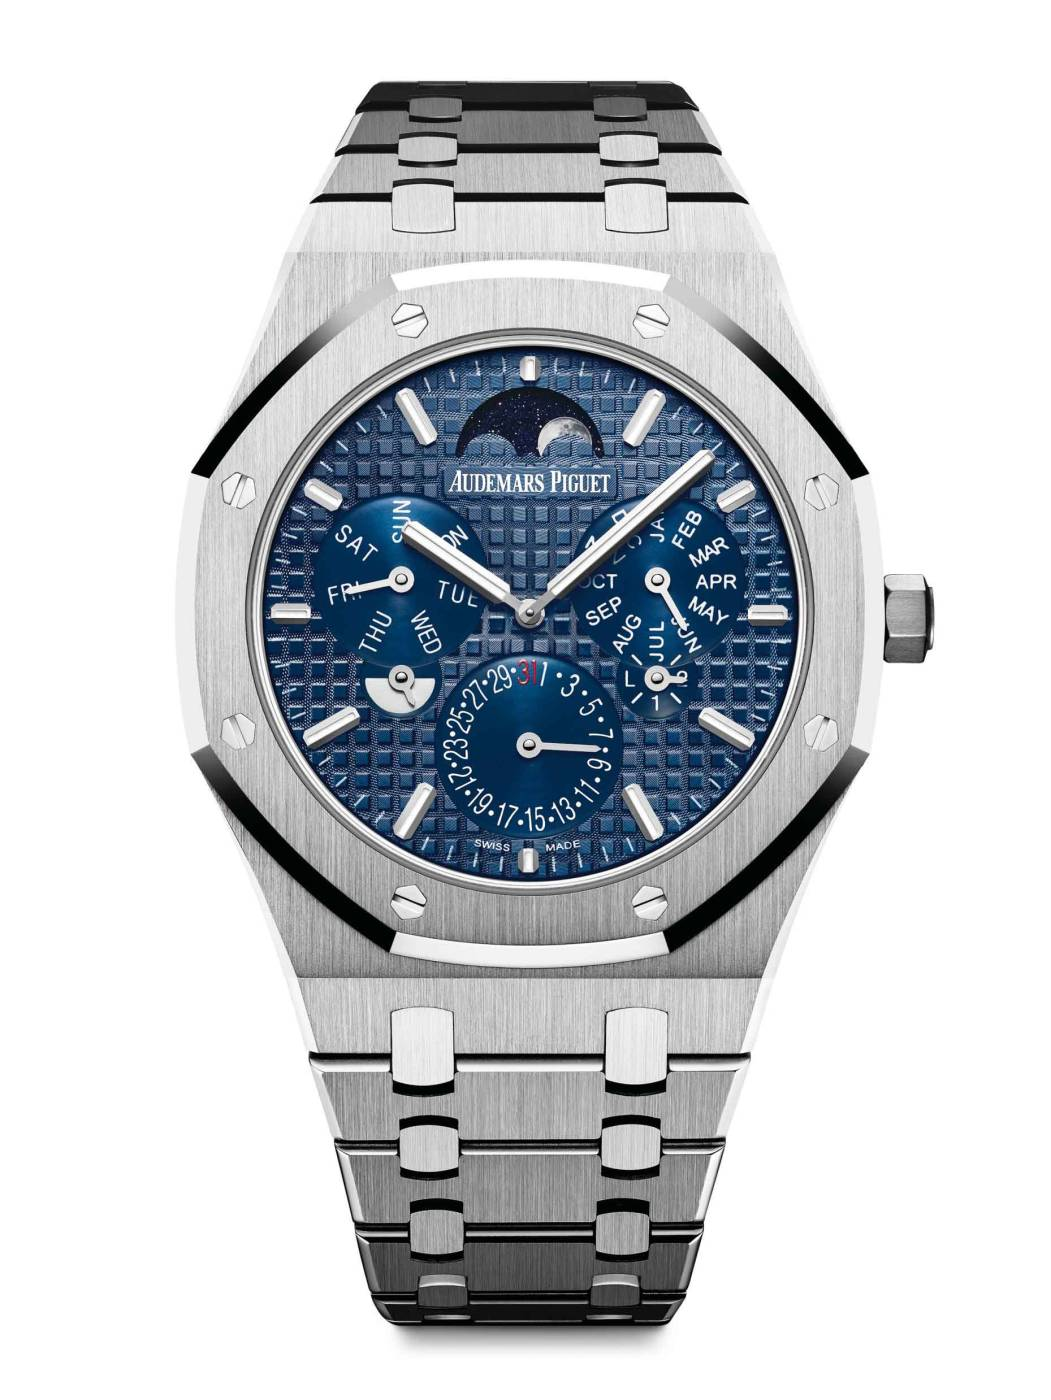 ROYAL OAK RD#2 PERPETUAL CALENDAR ULTRA-THIN de Audemars Piguet